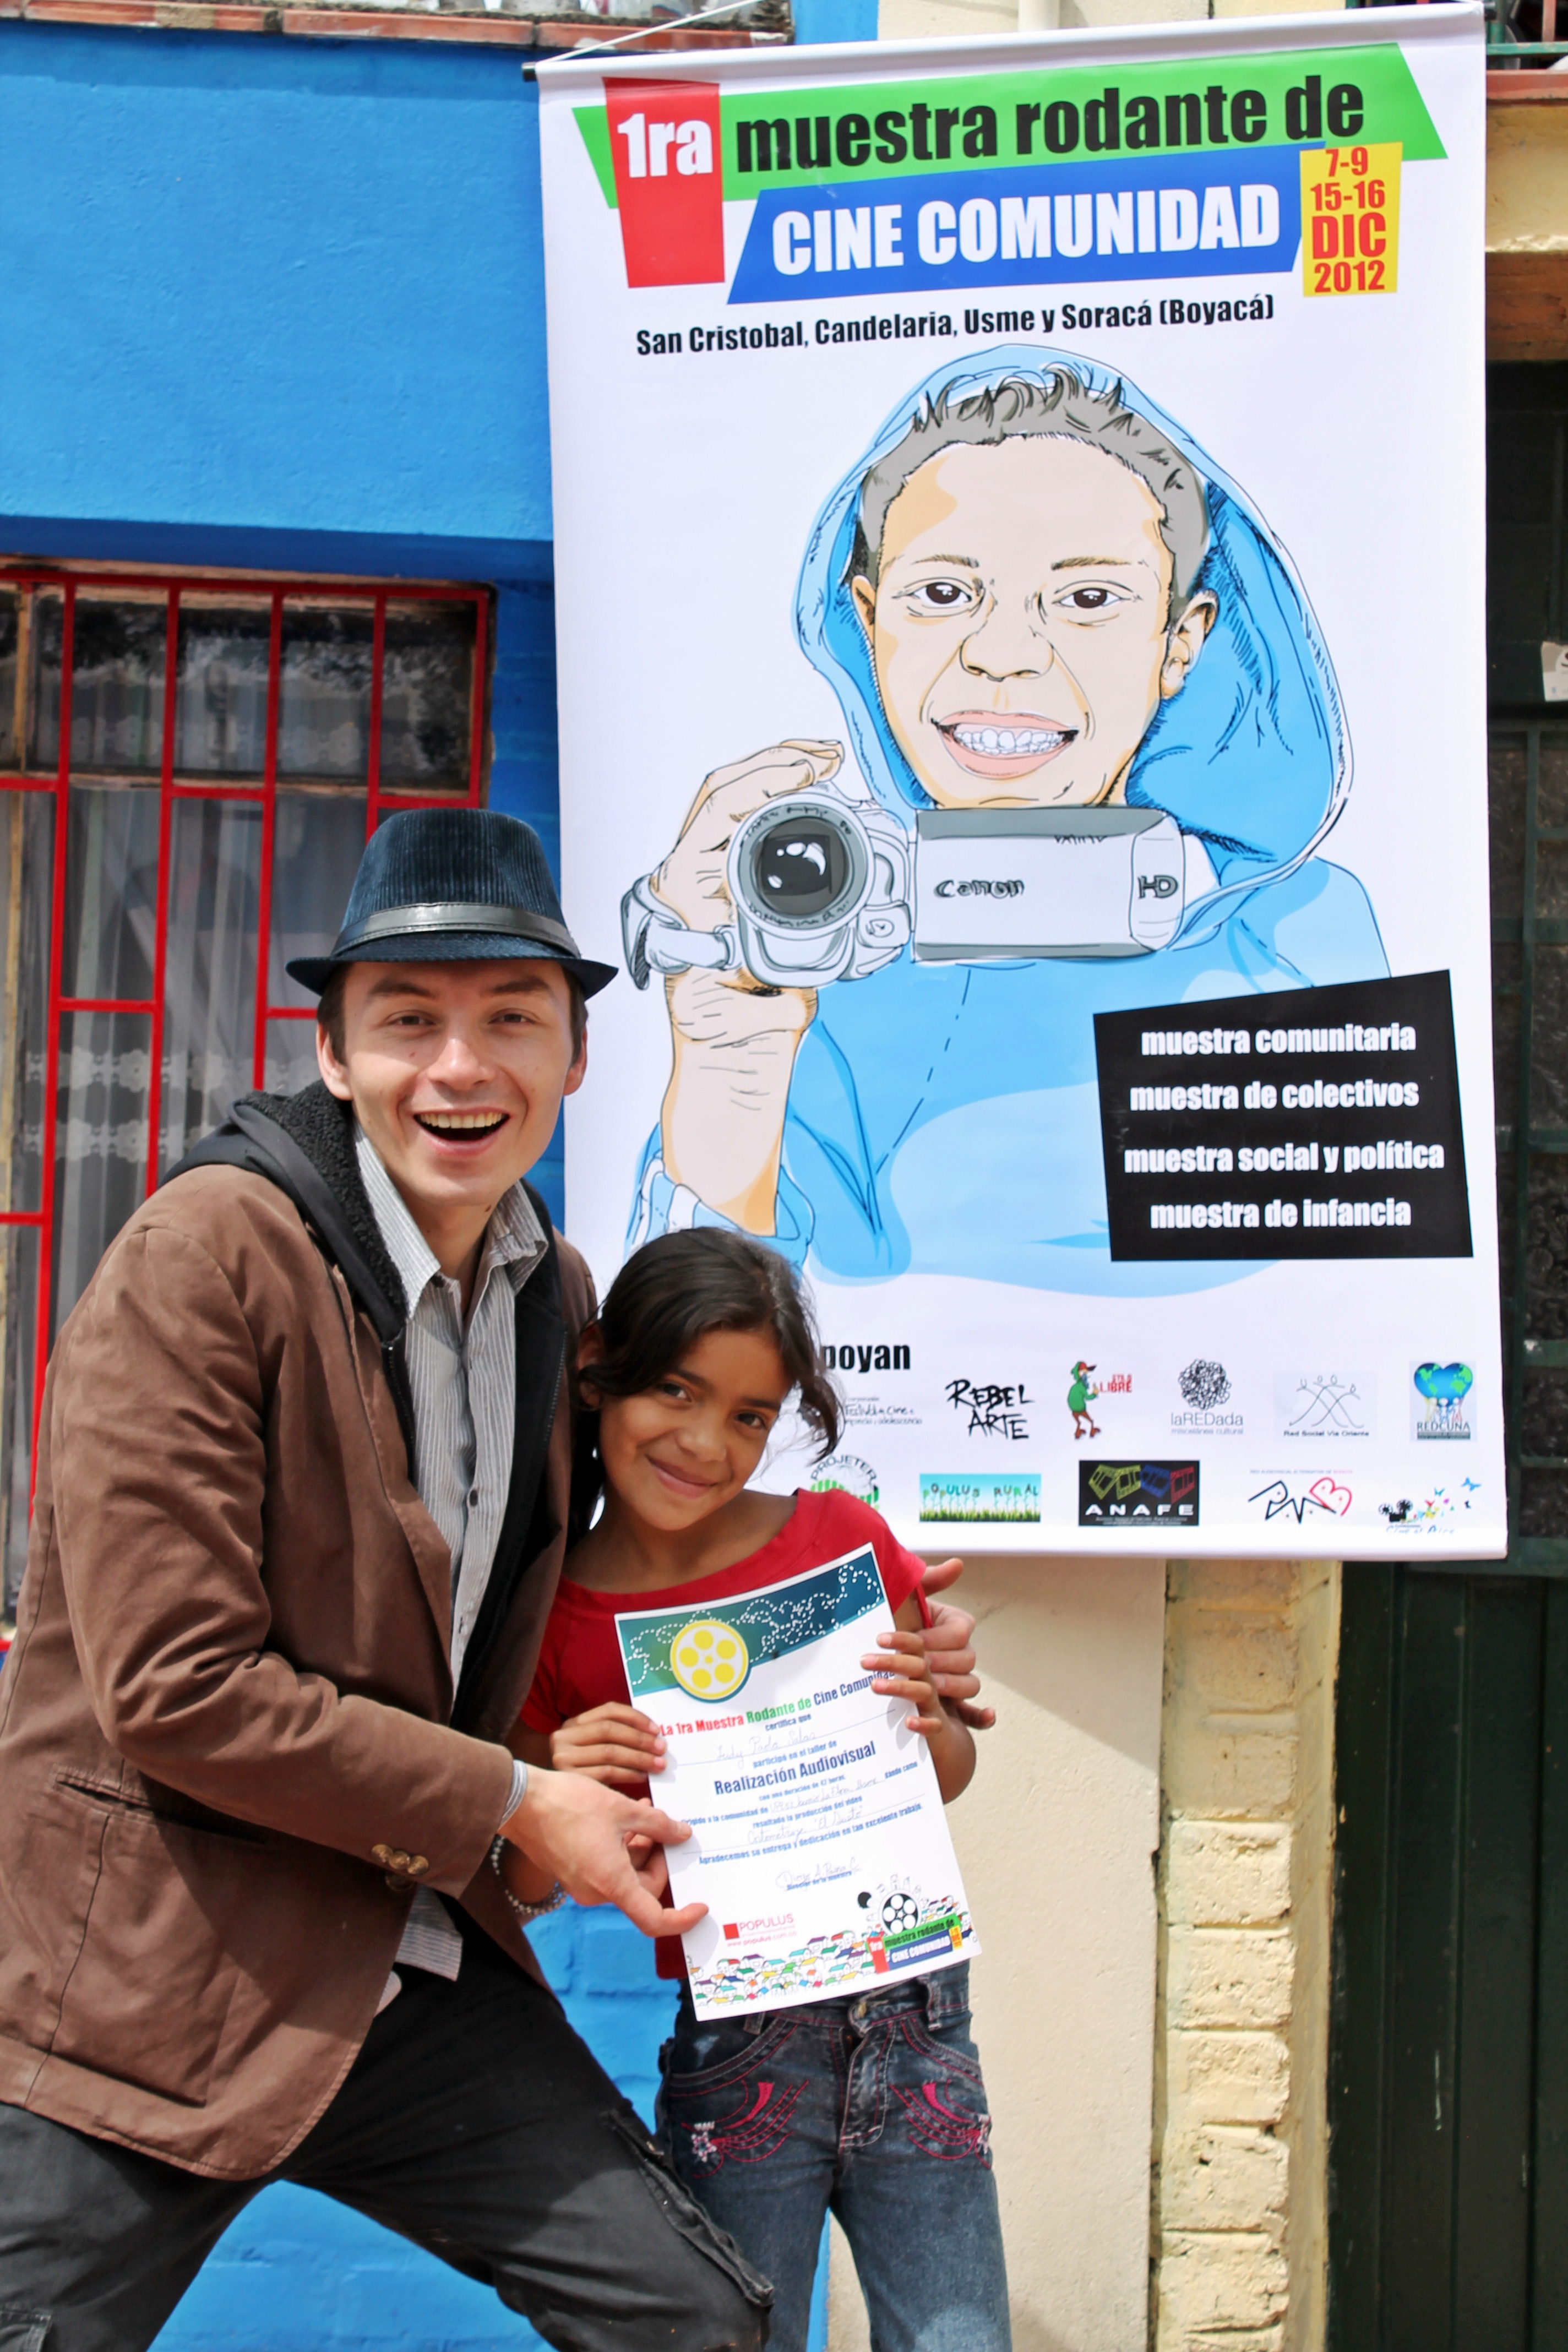 Diego Armando, co-founder and project leader in Colombia with one of the participants in their first project year